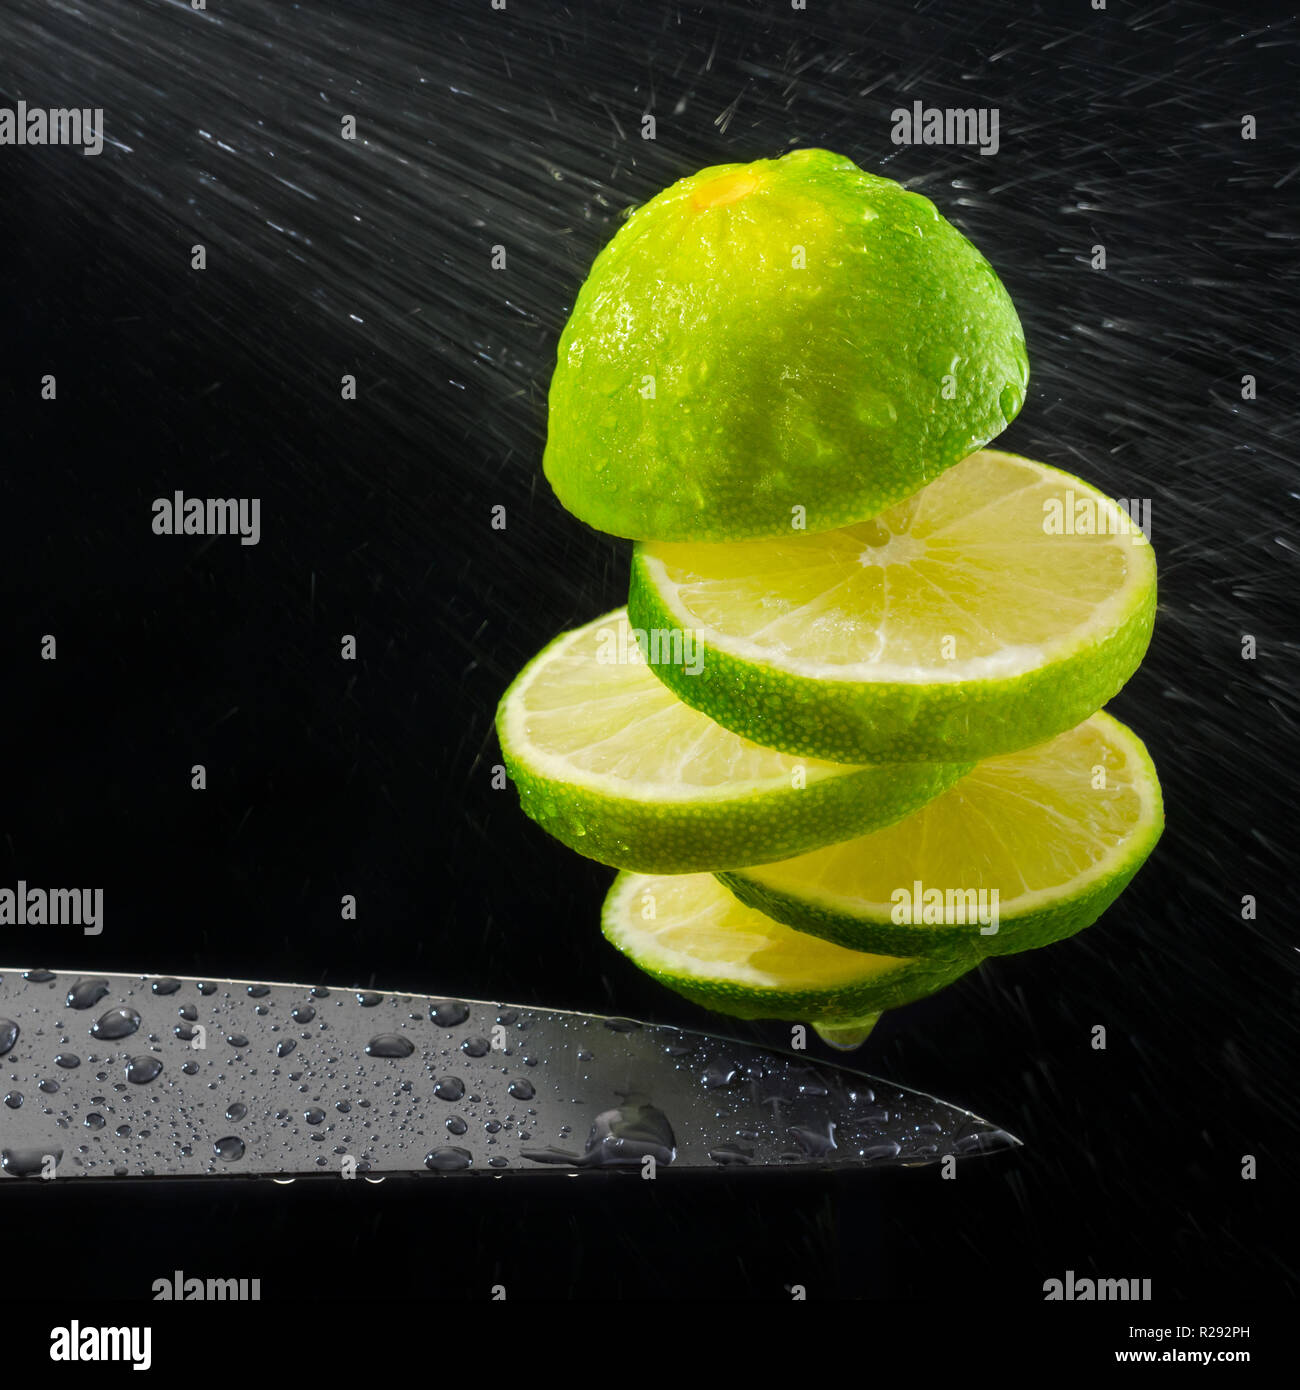 Green lemon cut on the fly, water spray. Stock Photo